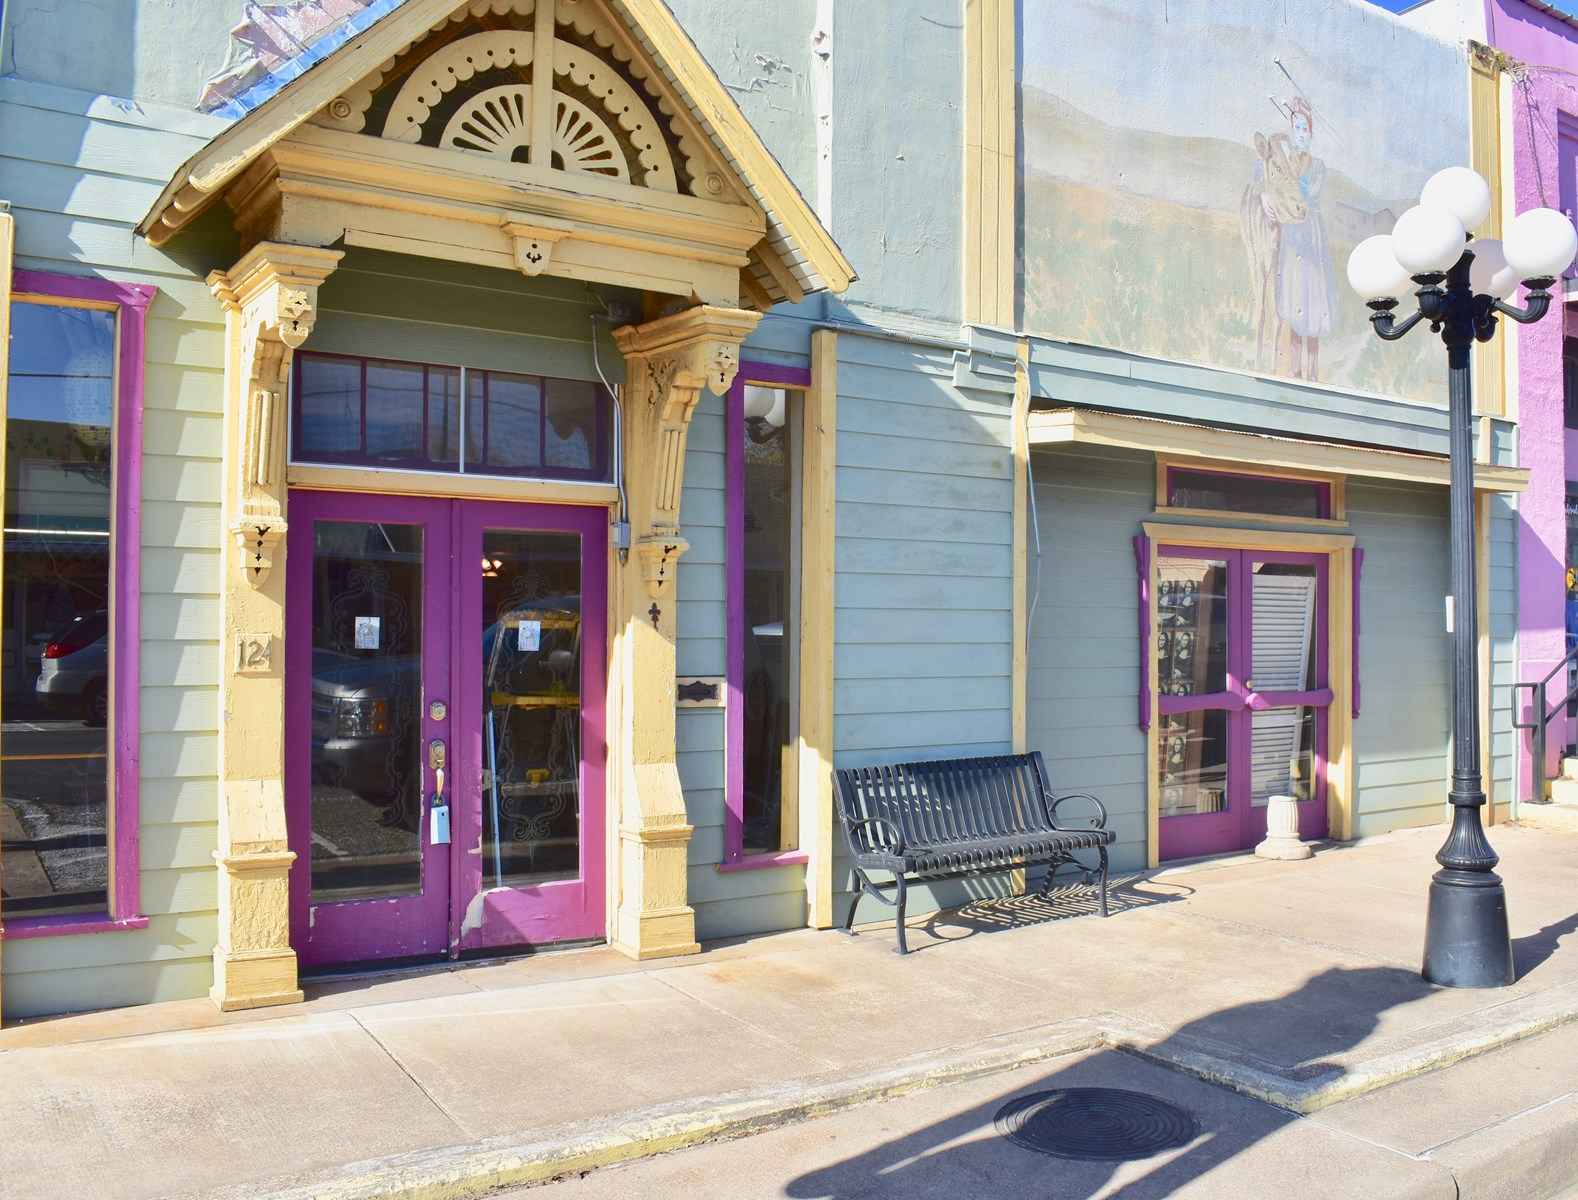 Commercial Property In DownTown Gladewater, Texas